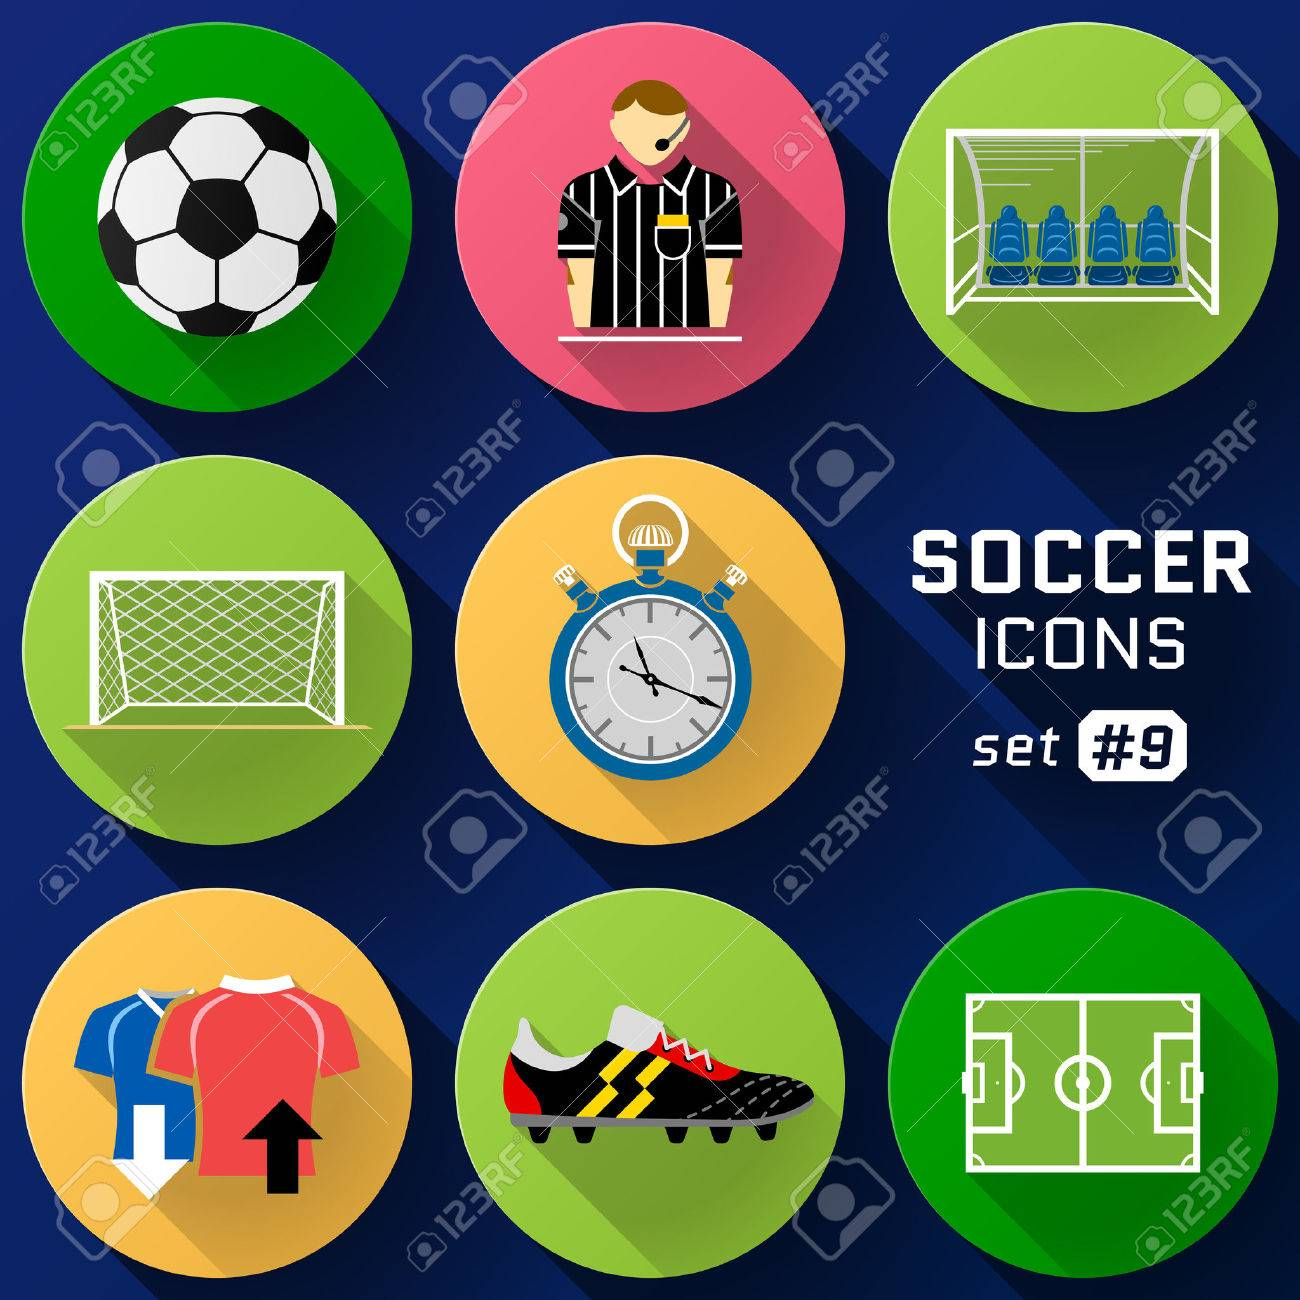 Color flat icon set of soccer elements pack of symbols for color flat icon set of soccer elements pack of symbols for association football qualitative buycottarizona